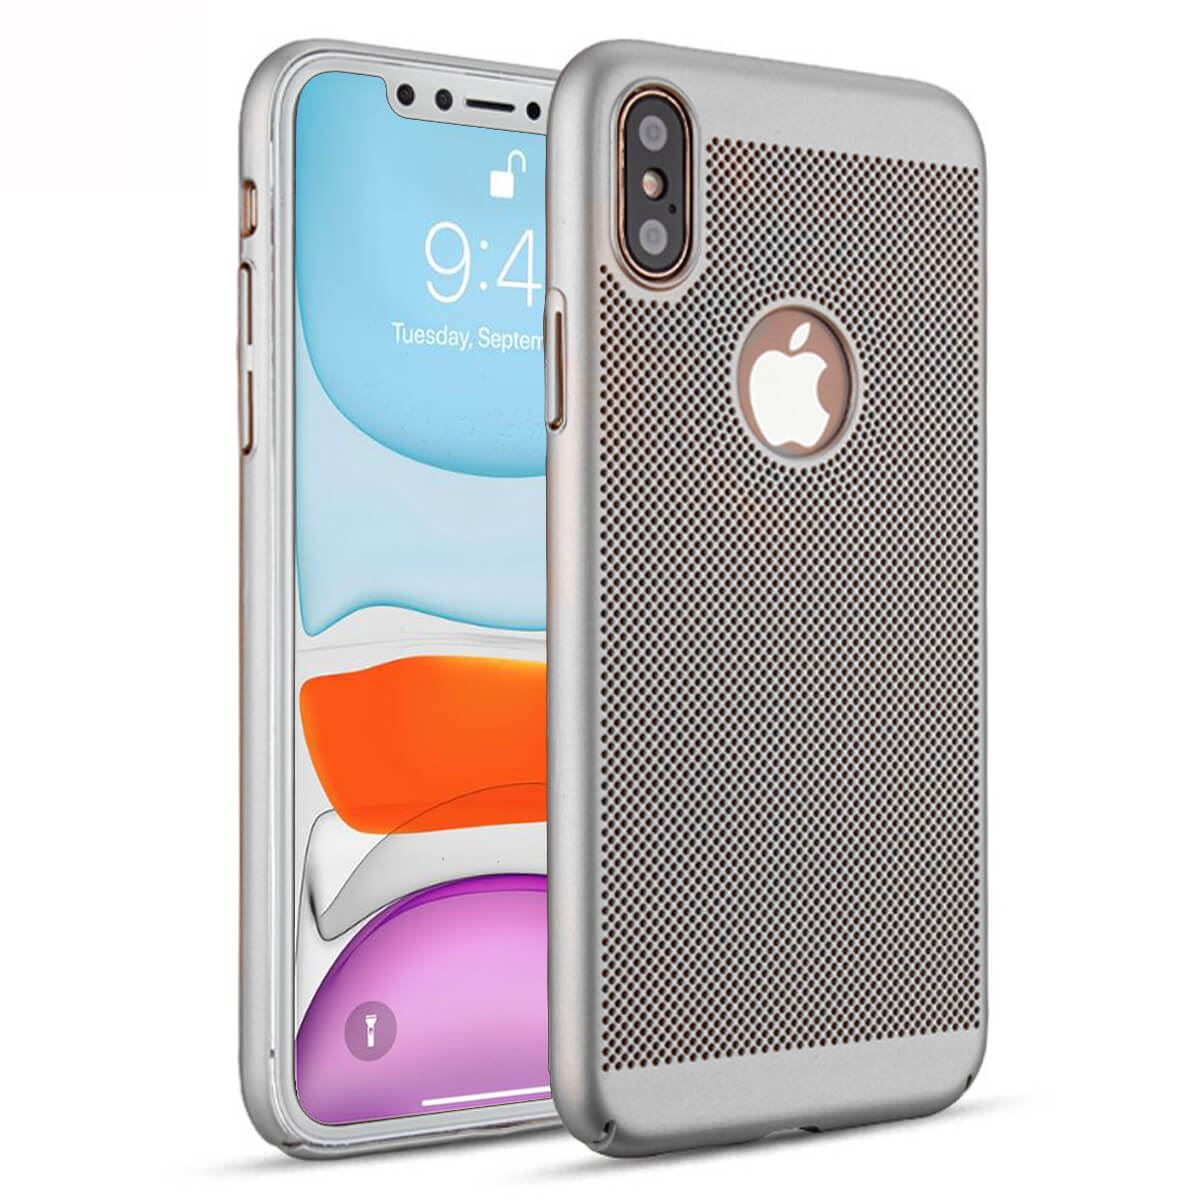 Ultra-Thin-Case-Apple-iPhone-10-X-8-7-6s-5s-Luxury-Slim-PC-Mesh-Hard-Back-Cover thumbnail 21